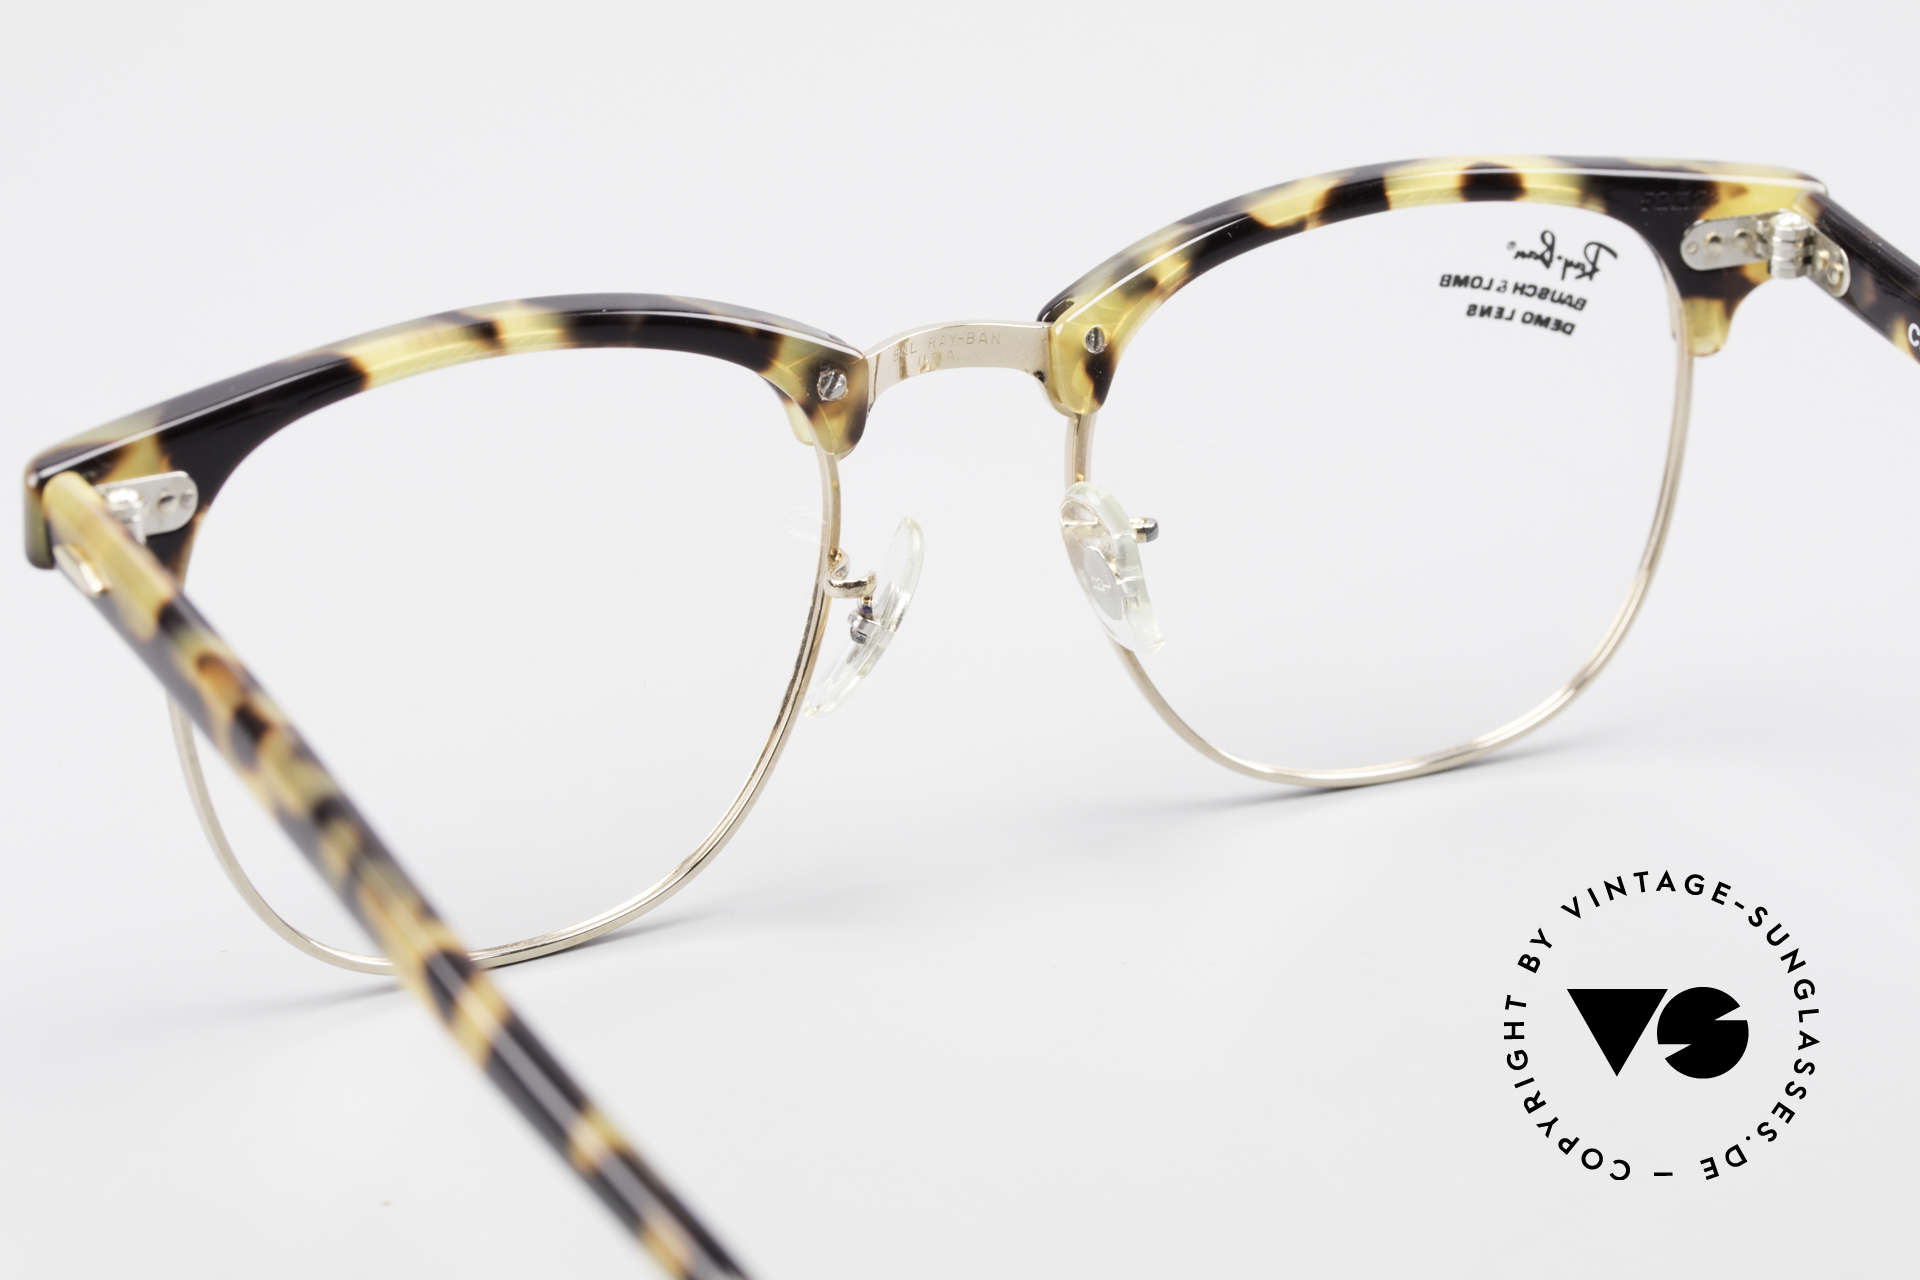 Ray Ban Clubmaster II Large Limited Edition USA B&L, never worn; like all our vintage Ray Ban frames, Made for Men